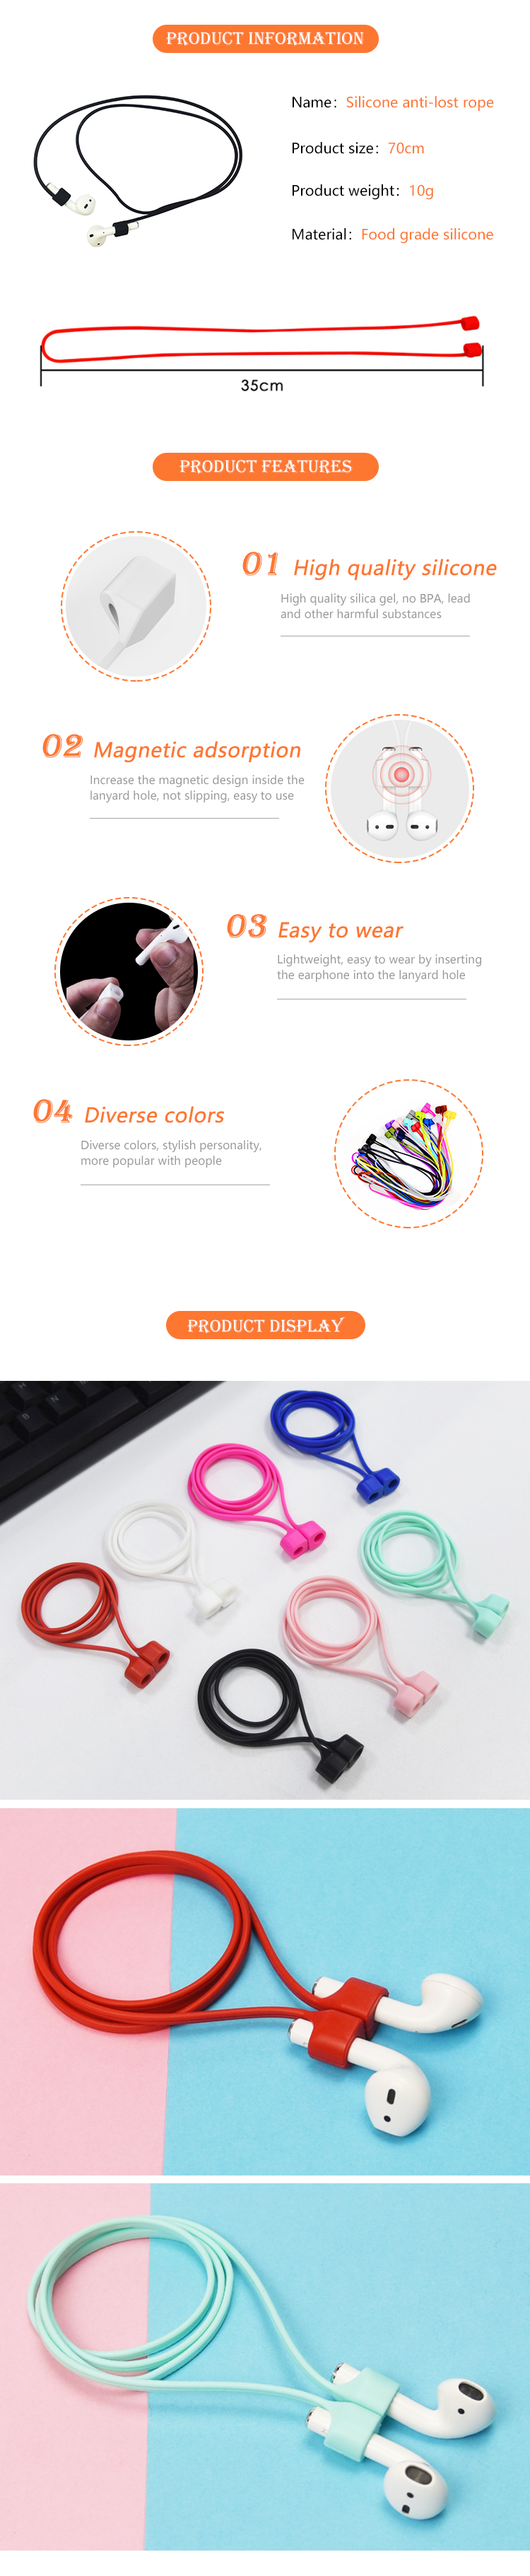 Custom Colorful Silicone Magnetic Loop Strap Anti-Lost Rope for Wireless Earphones